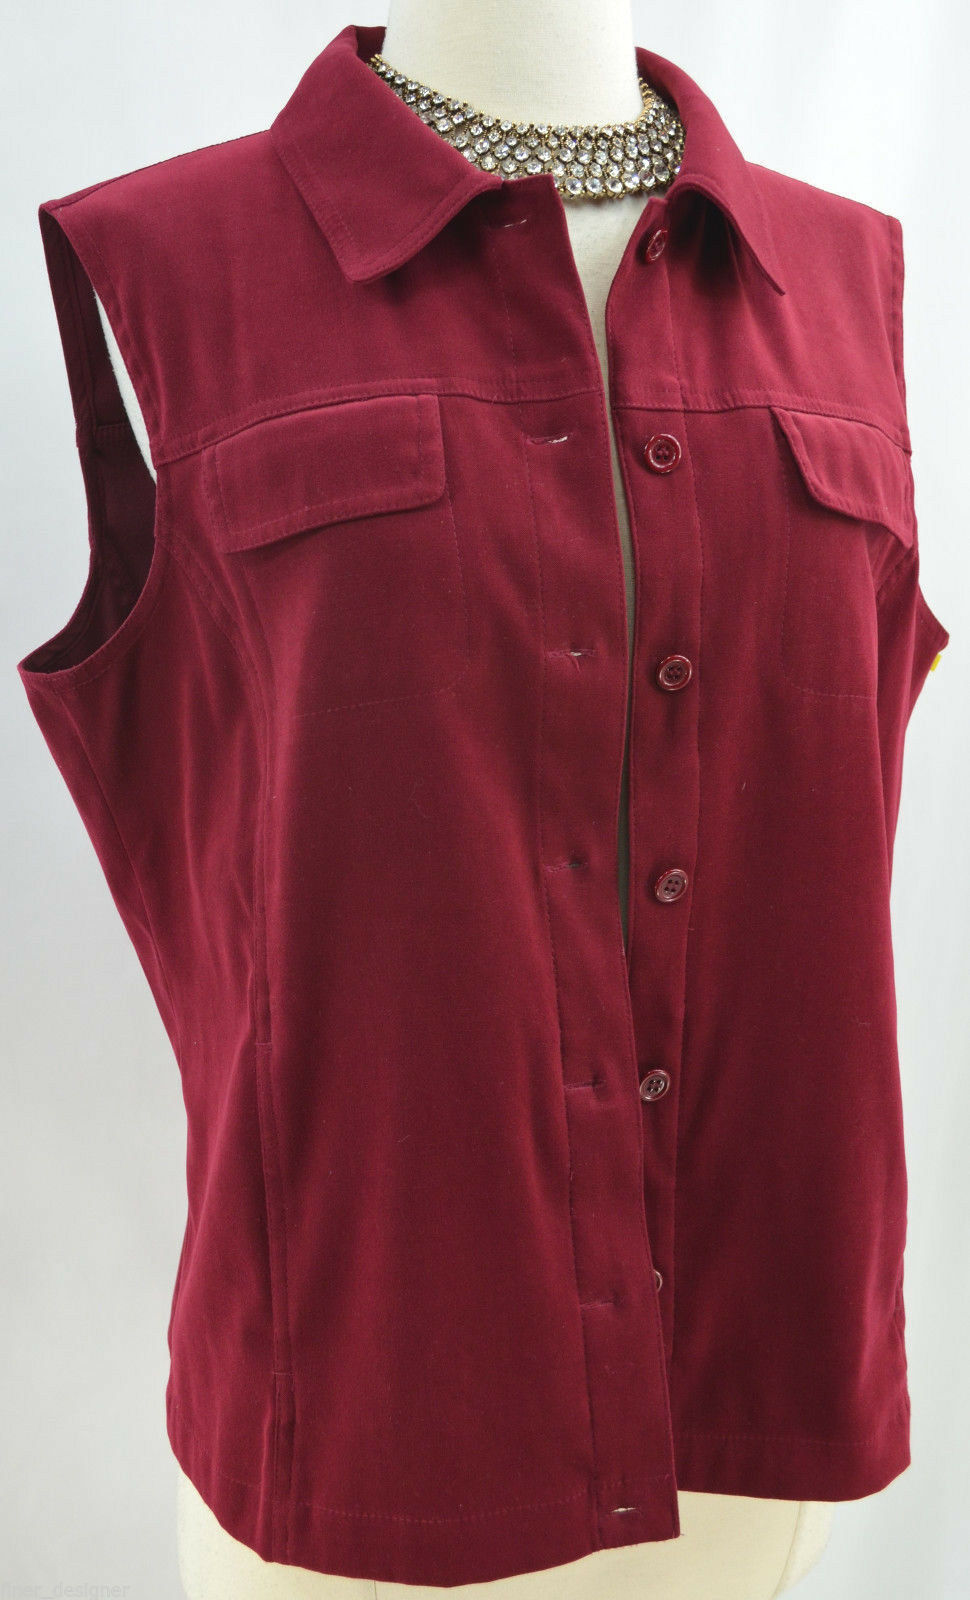 Talbots stretch vest top button sleeveless blouse shirt micro suede cranberry M